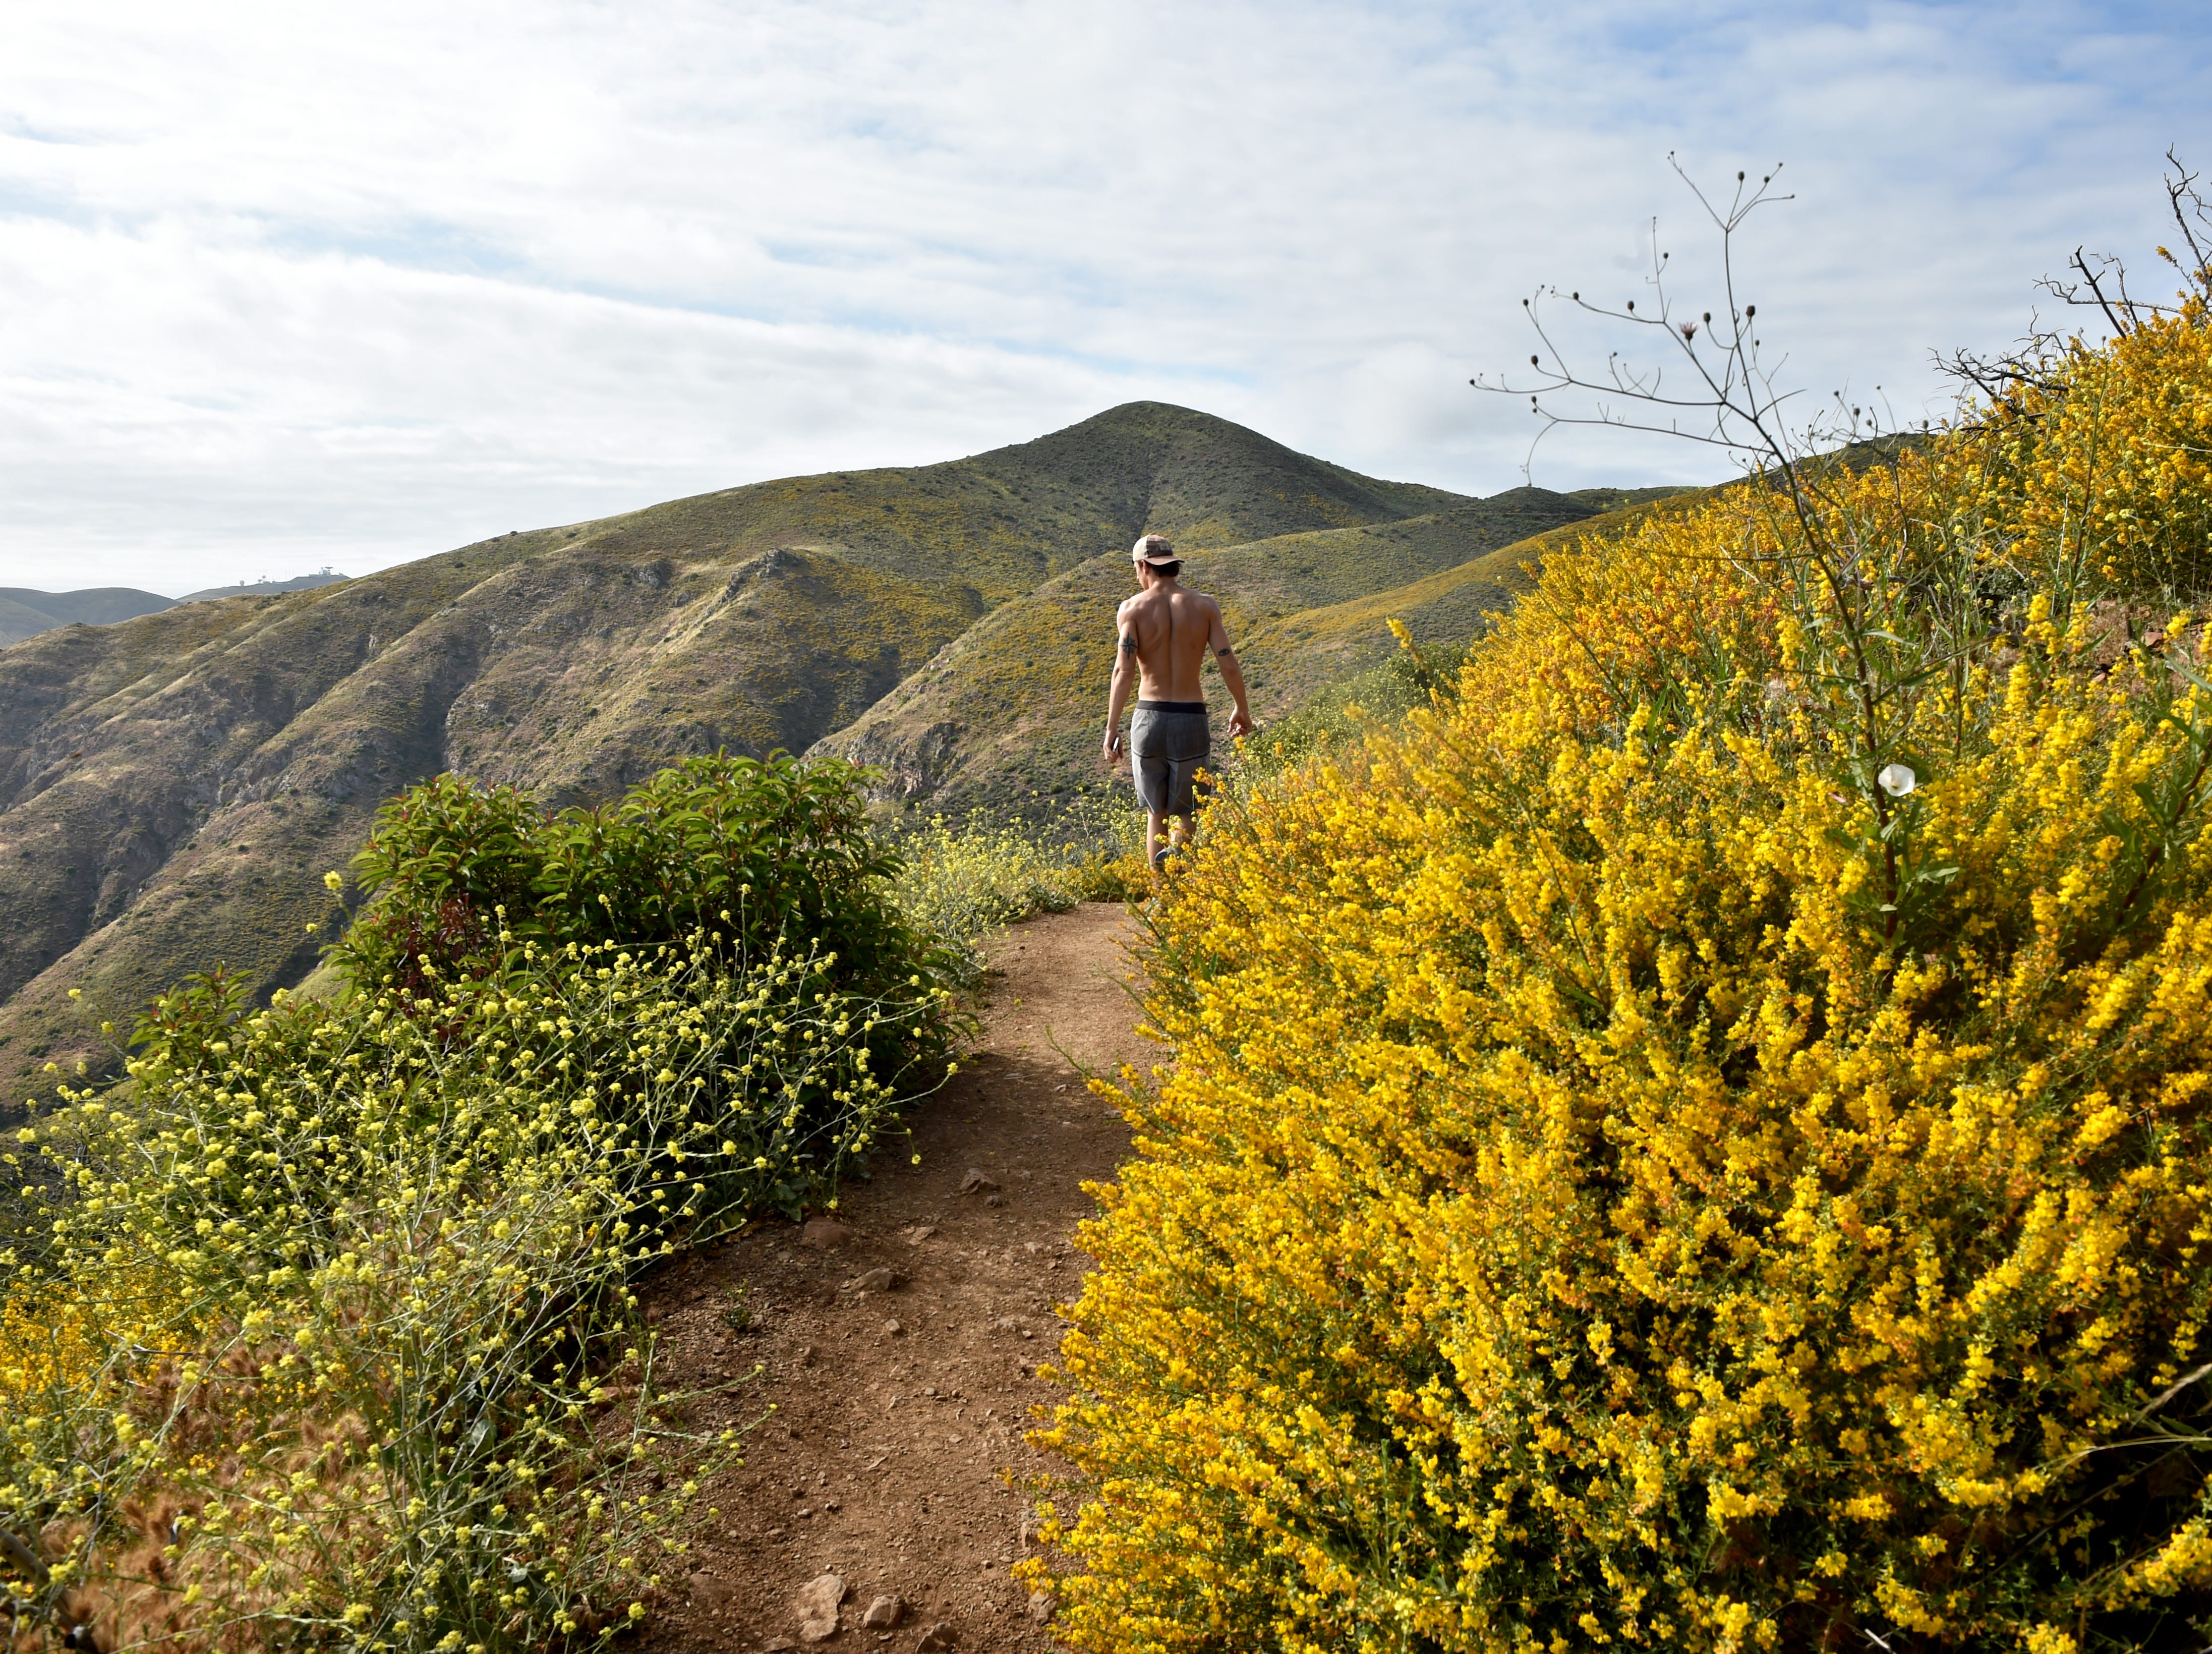 Kyle Scheer, 22, of Oxnard, looks out over the Ray Miller Trail in the Santa Monica Mountains, where native grasses, black mustard and wildflowers have grown thick after a wet winter. The vegetation bloom could pose challenges for firefighting agencies as summer approaches, leaving an abundance of dry fuel for wildfires.